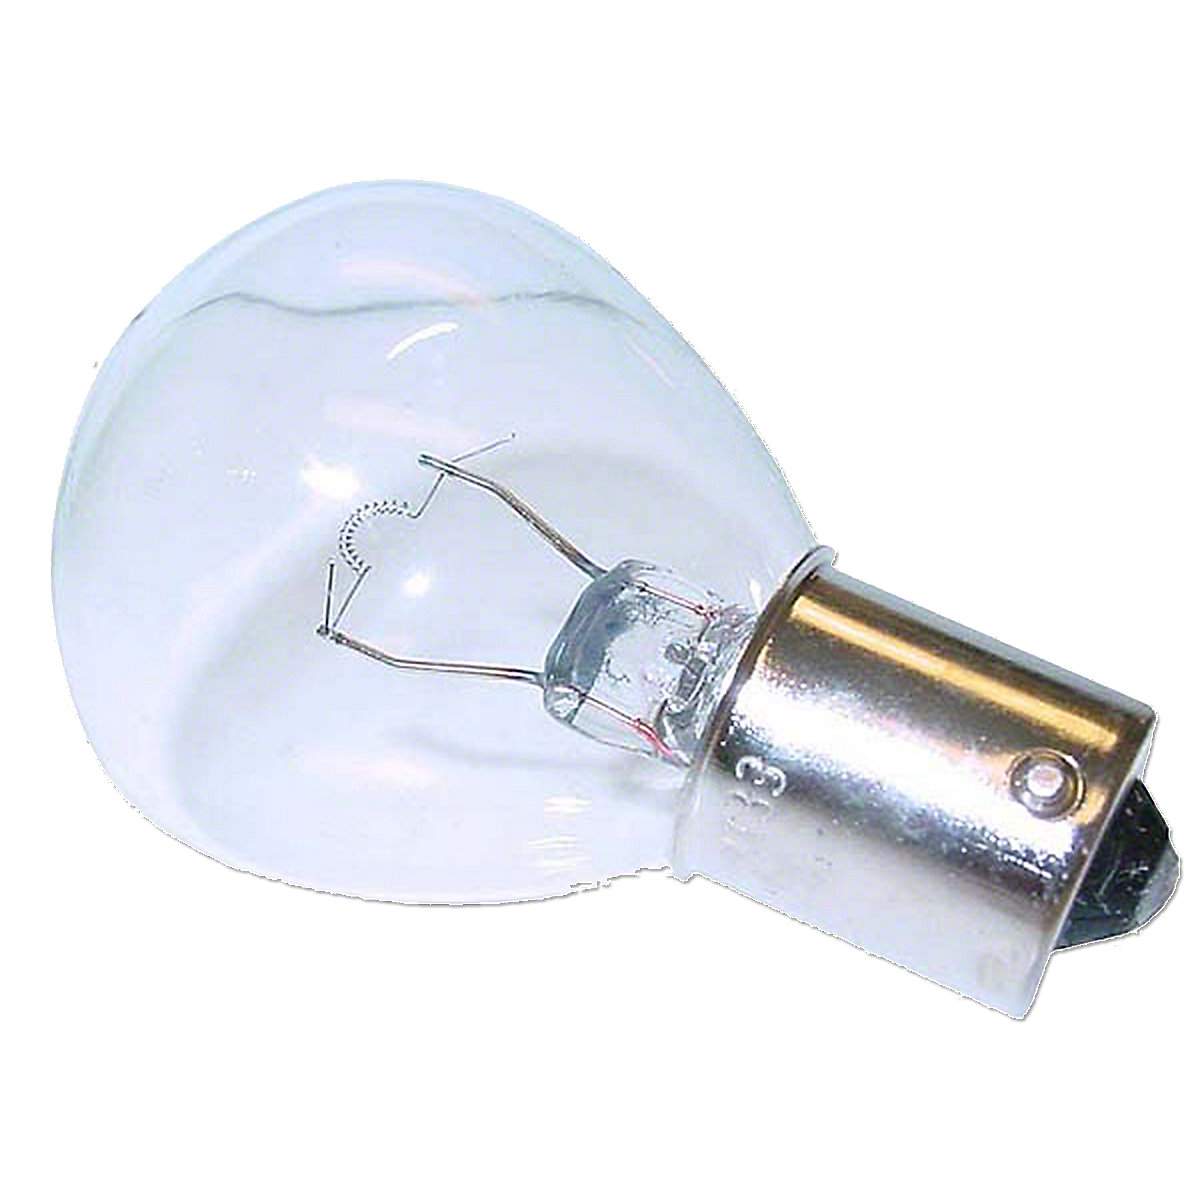 Chinese Tractor Headlight Bulbs : Ihs light bulb volt